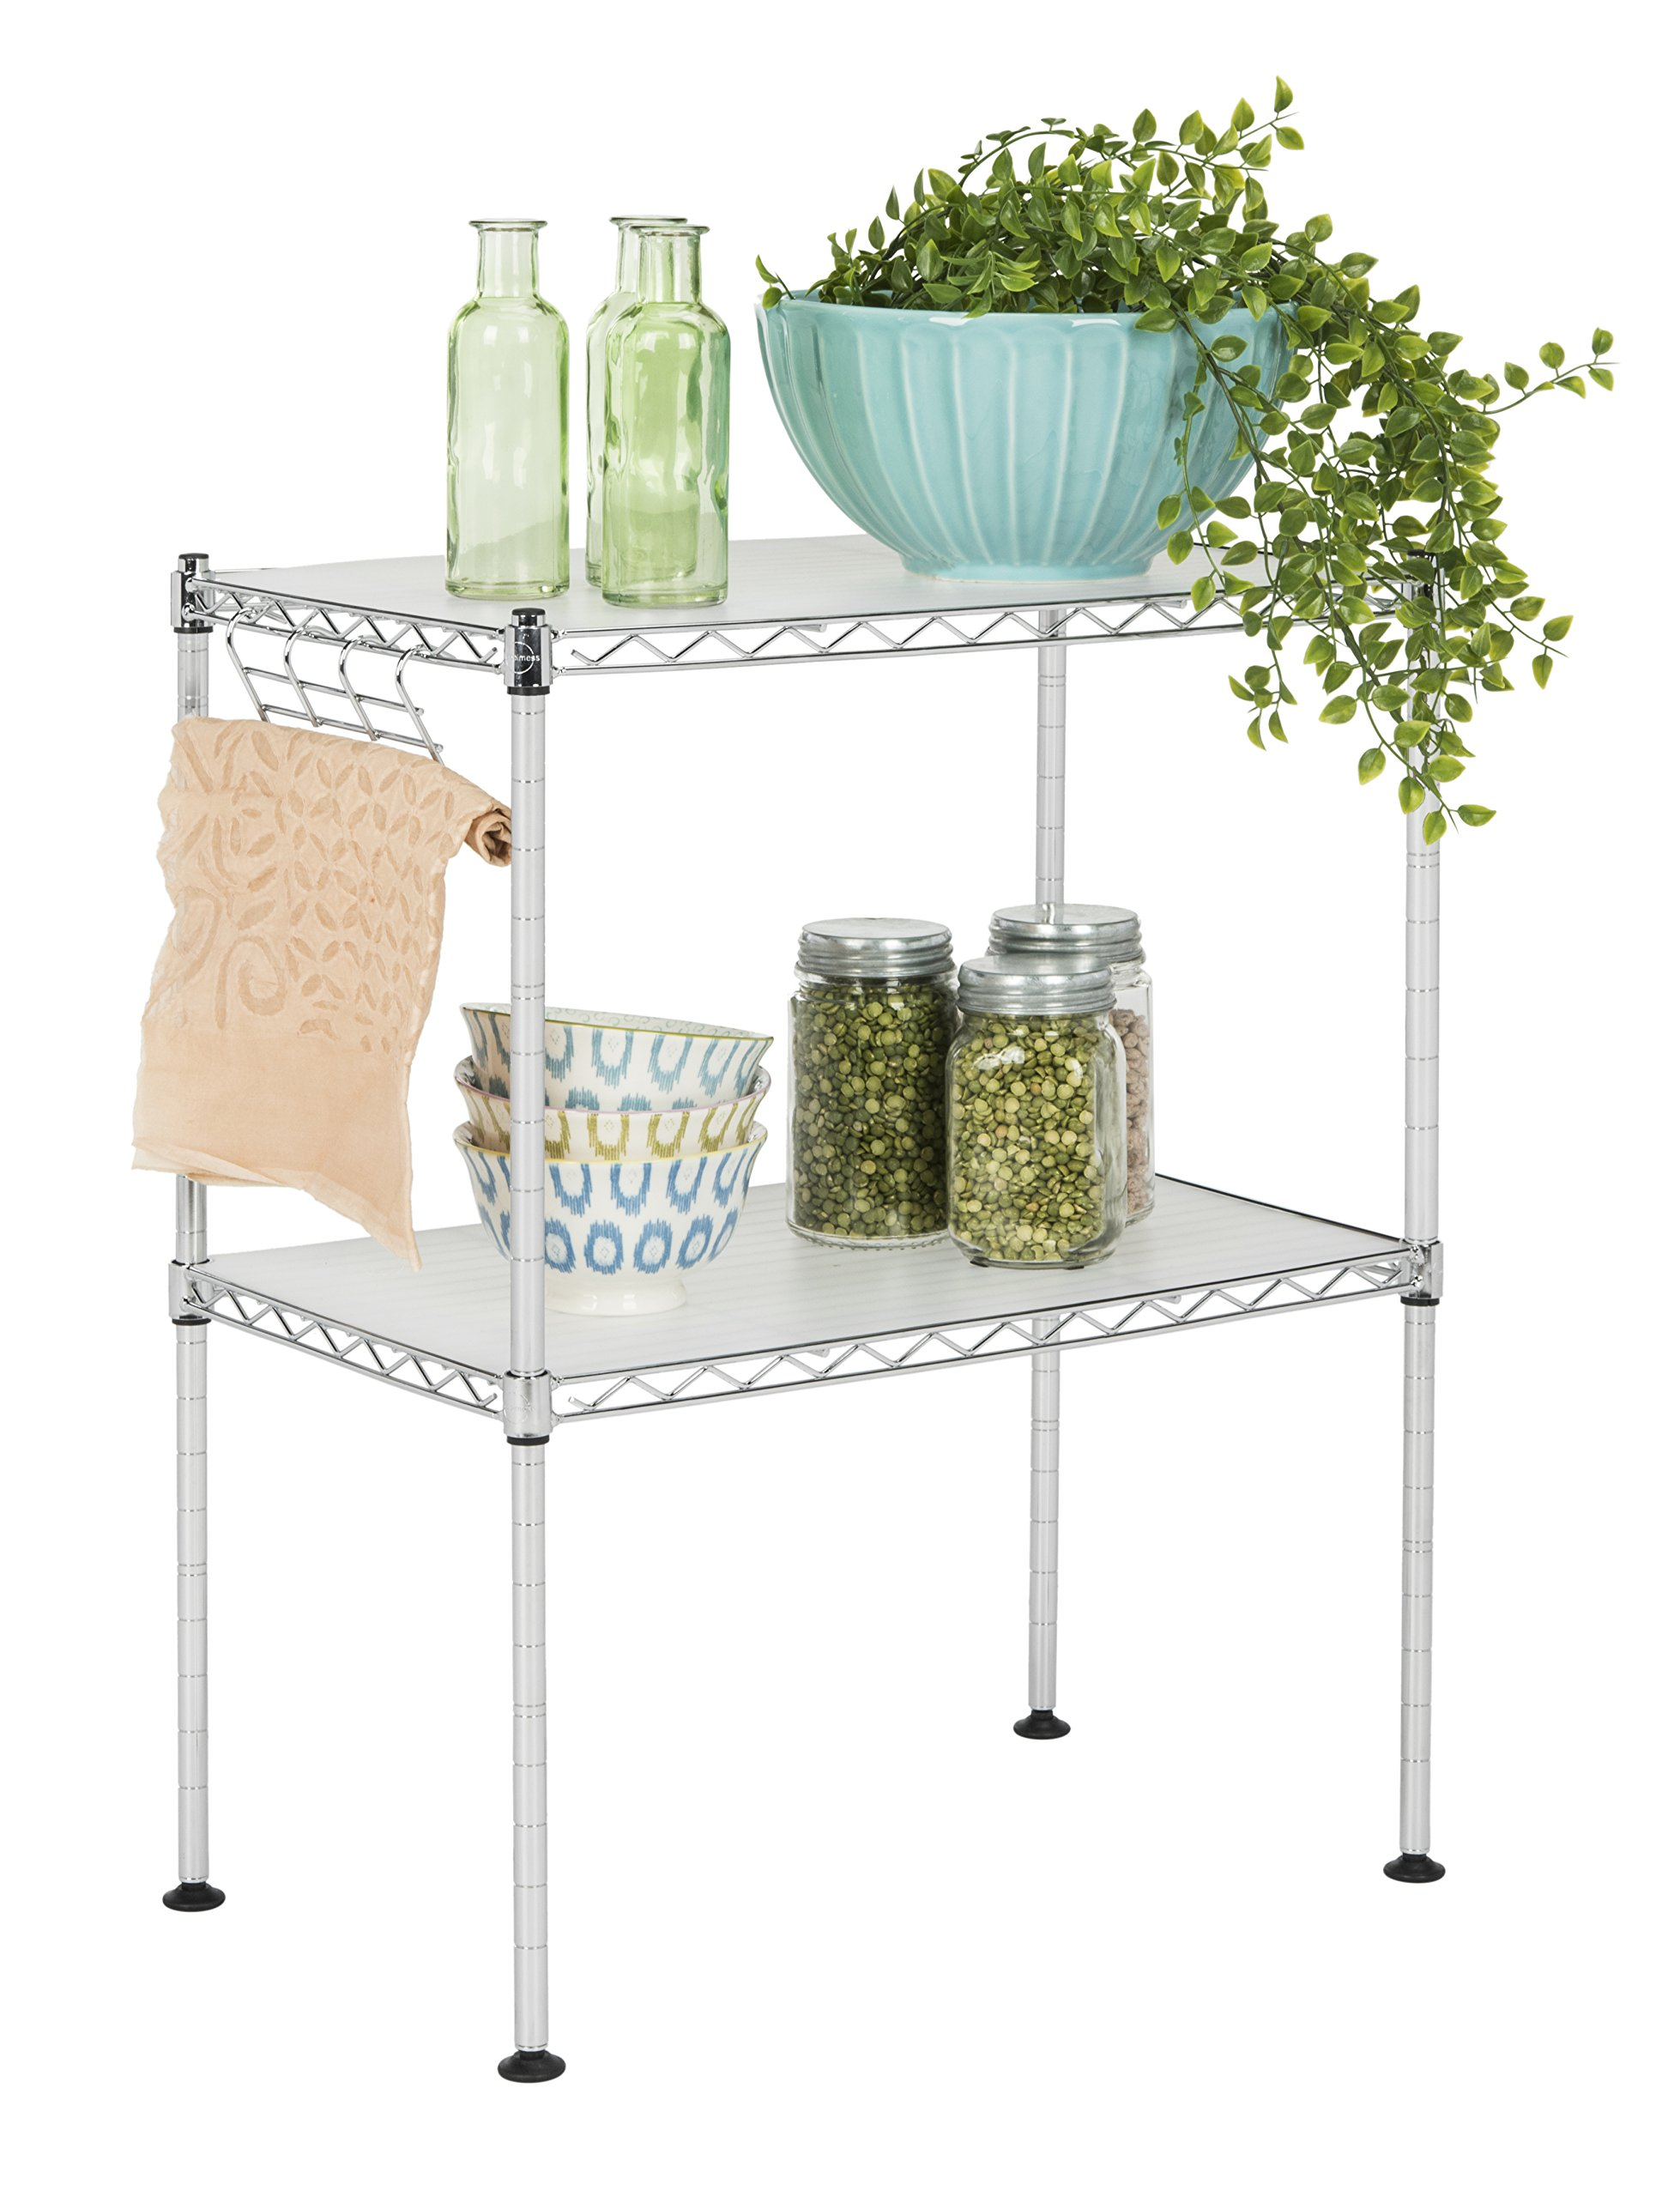 happimess HPM5013A Racking, 19.69 in. W x 11.81 in. D x 23.62 in. H, Silver by happimess (Image #7)